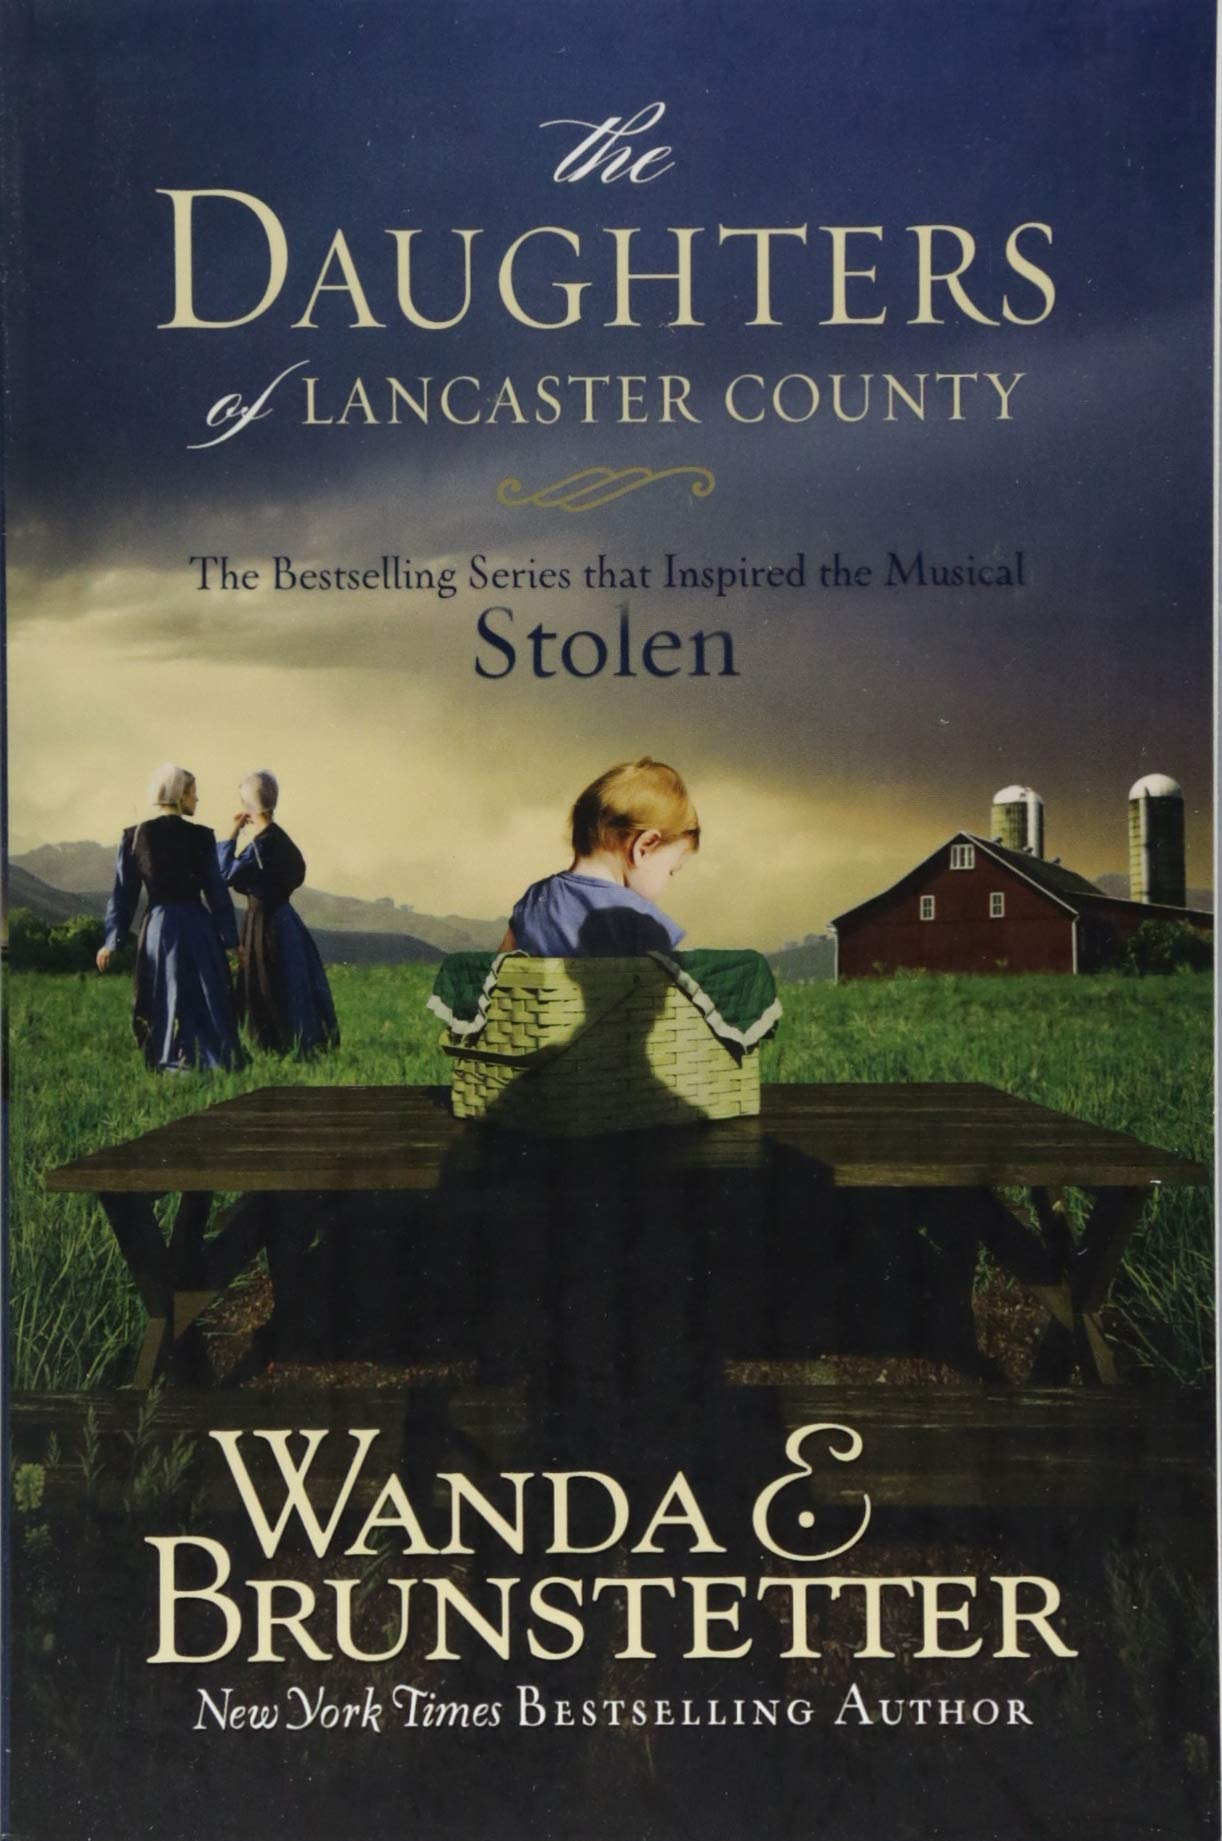 The Daughters of Lancaster County: The Bestselling Series That Inspired the  Musical, Stolen: Wanda E. Brunstetter: 9781683226499: Amazon.com: Books